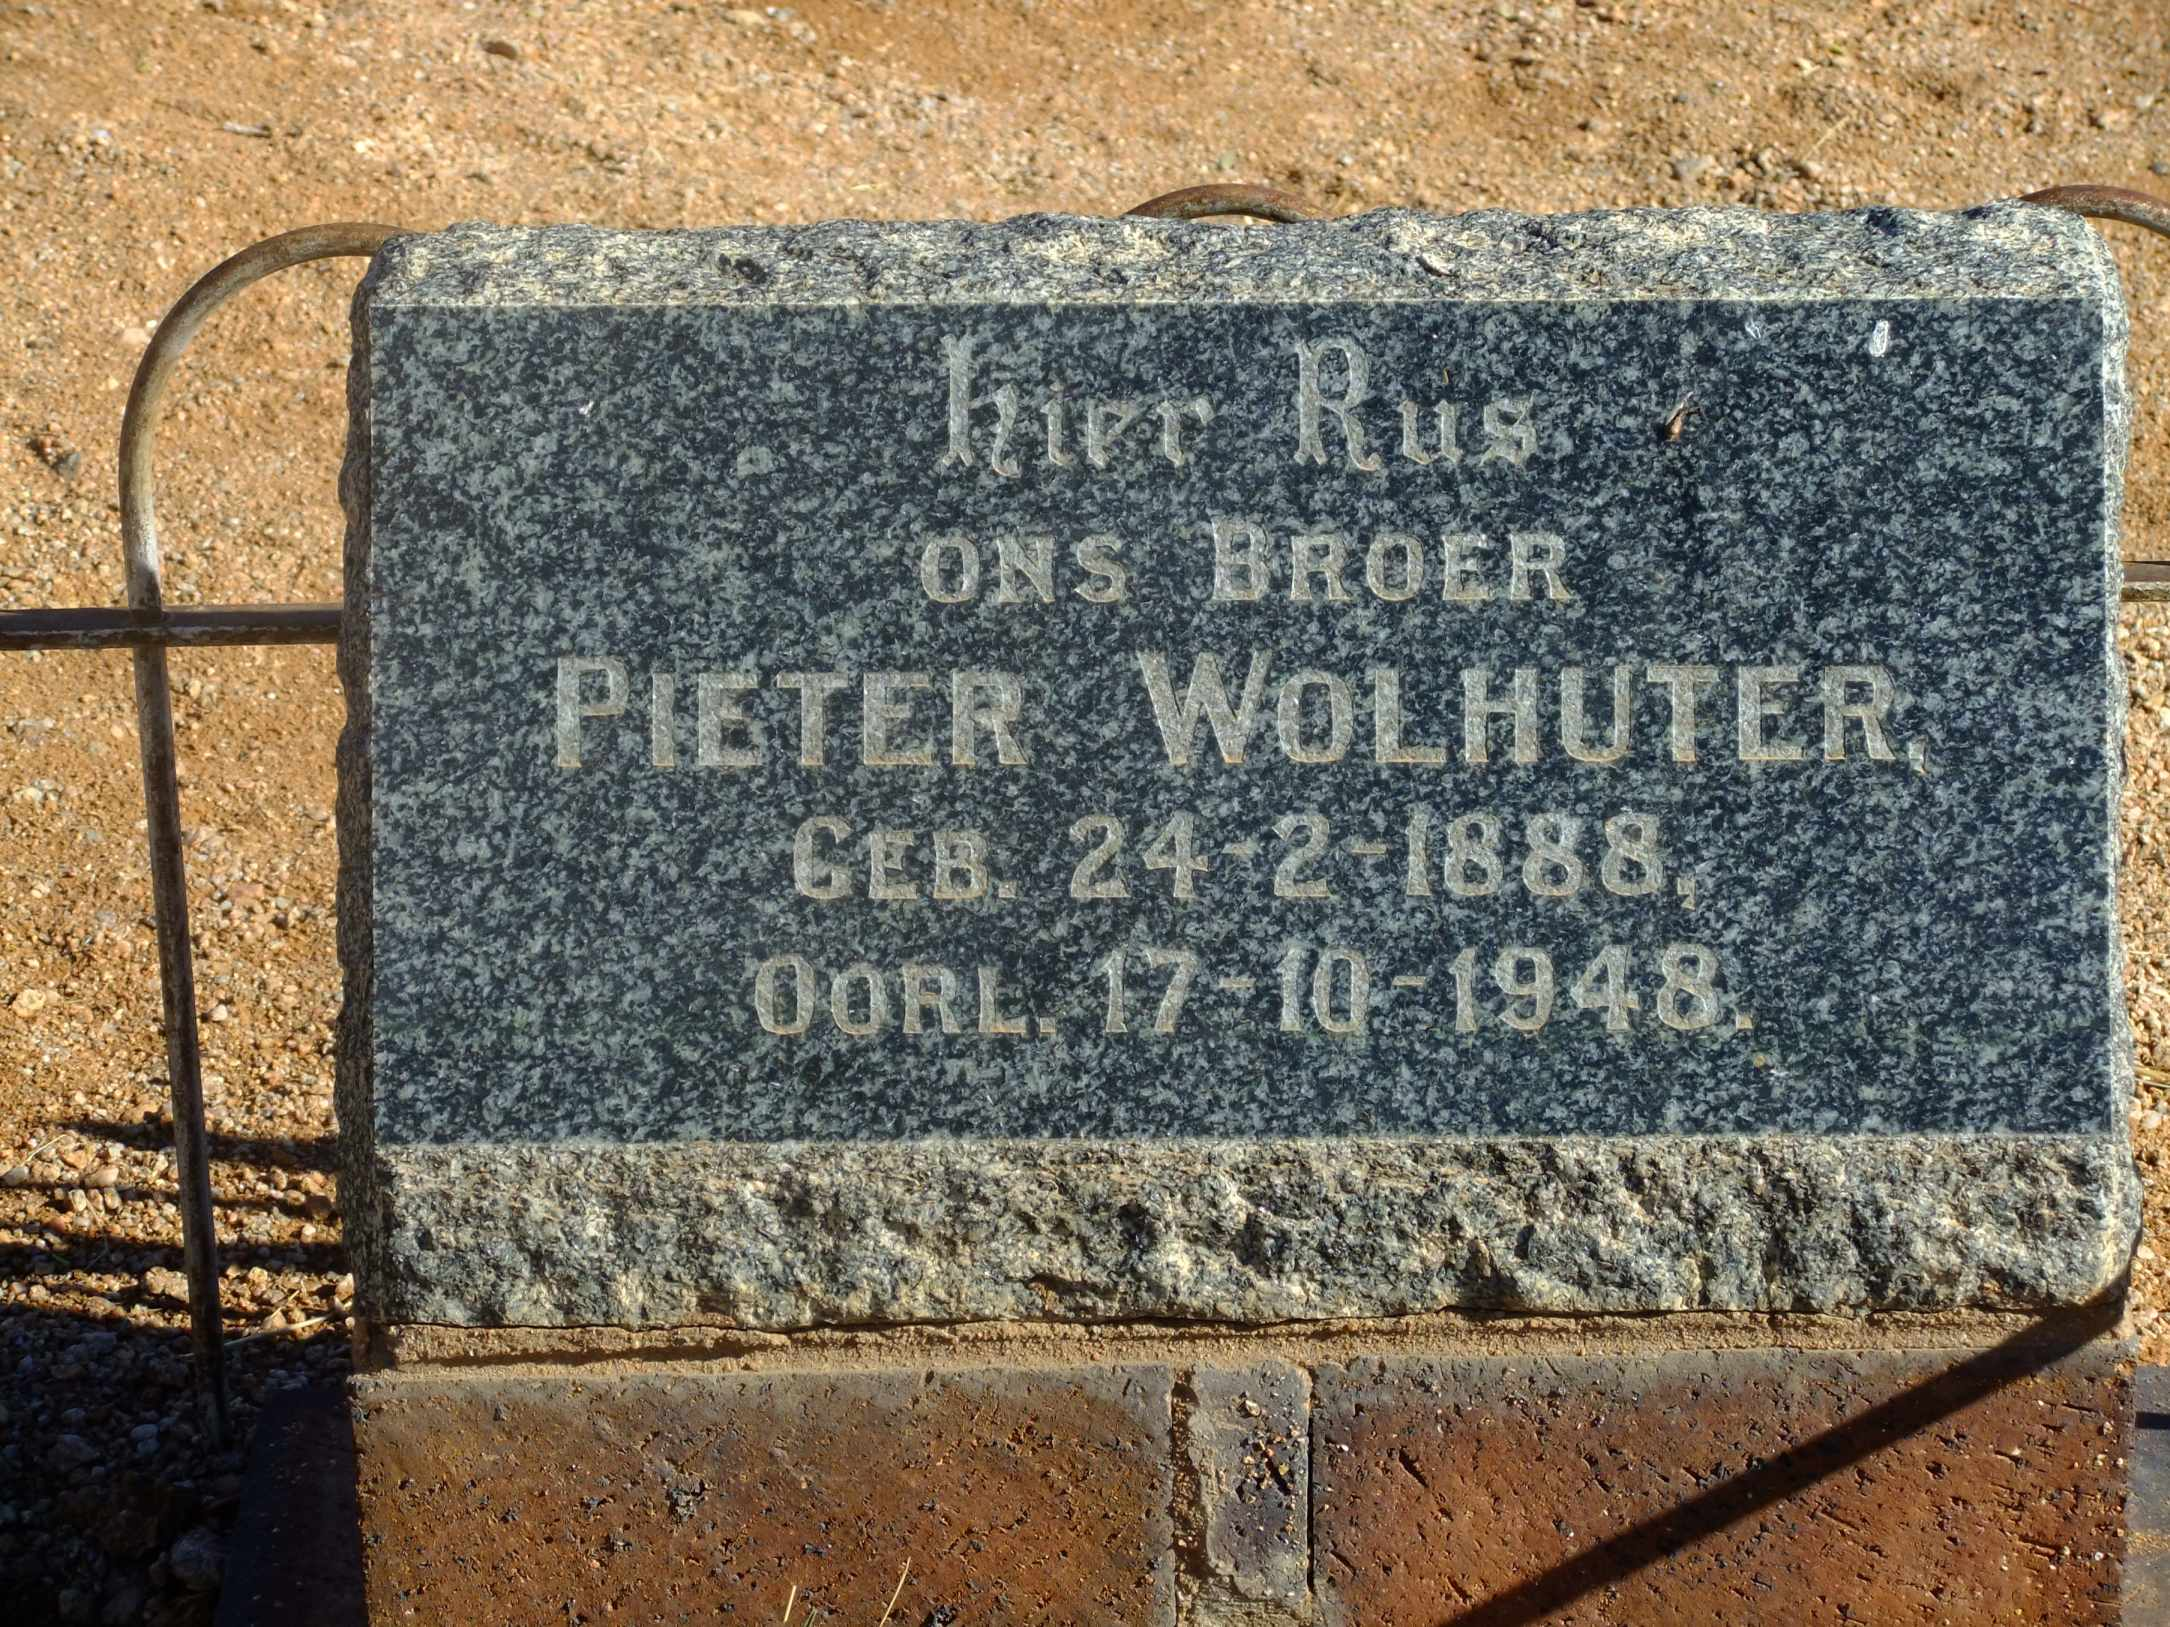 Wolhuter, Pieter born 24 February 1888 died 17 October 1948